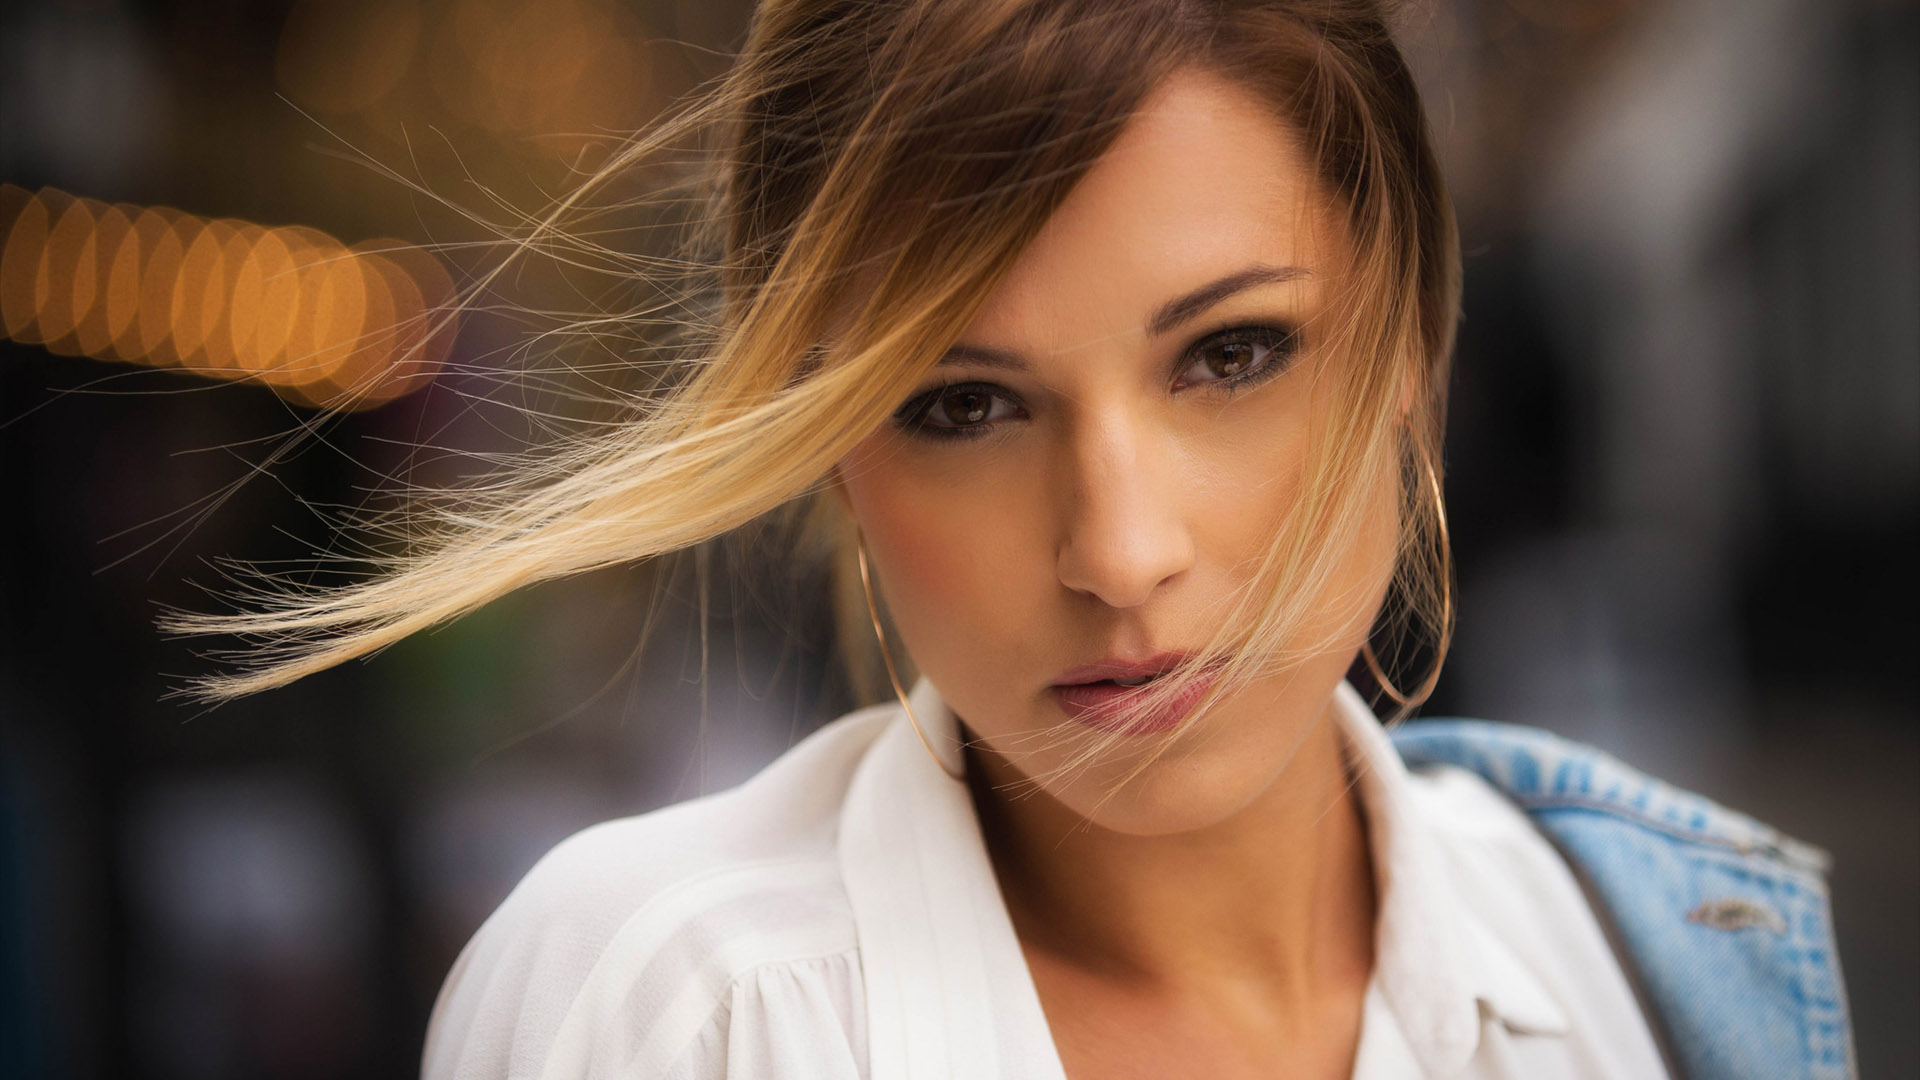 Photofocus Photographer of the Day for Beauty is Steve Lavelle with Anna 6